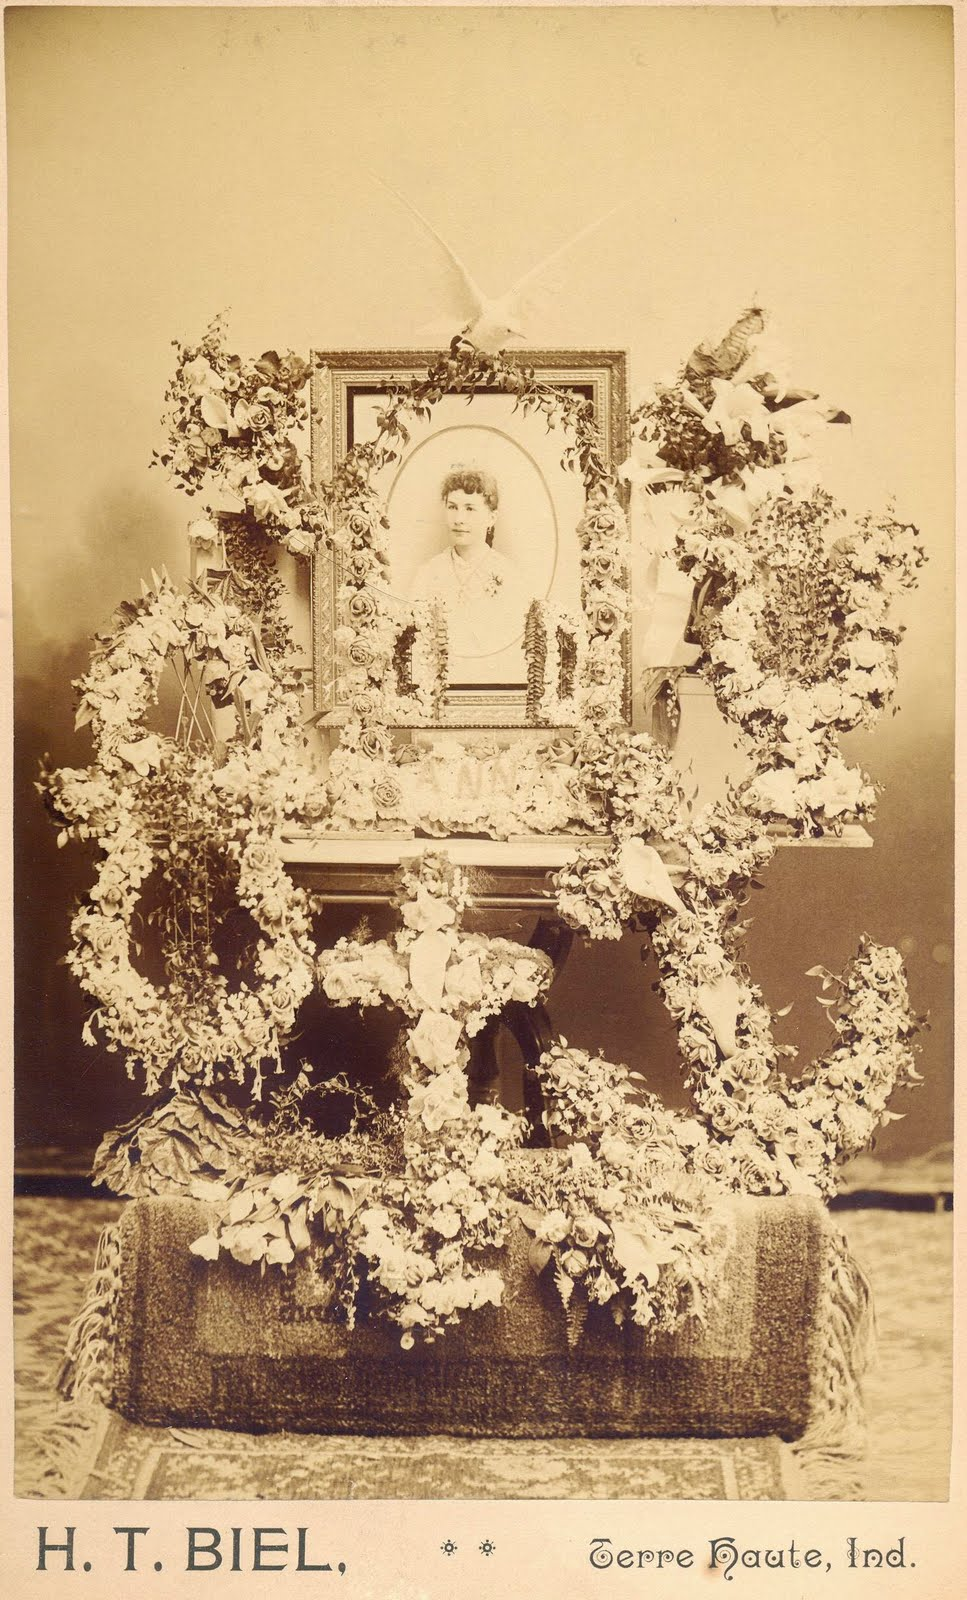 A land of deepest shade victorian home memorial shrines representations of the cross the anchor and the lyre are included as well as the gates of heaven crowned with a dove izmirmasajfo